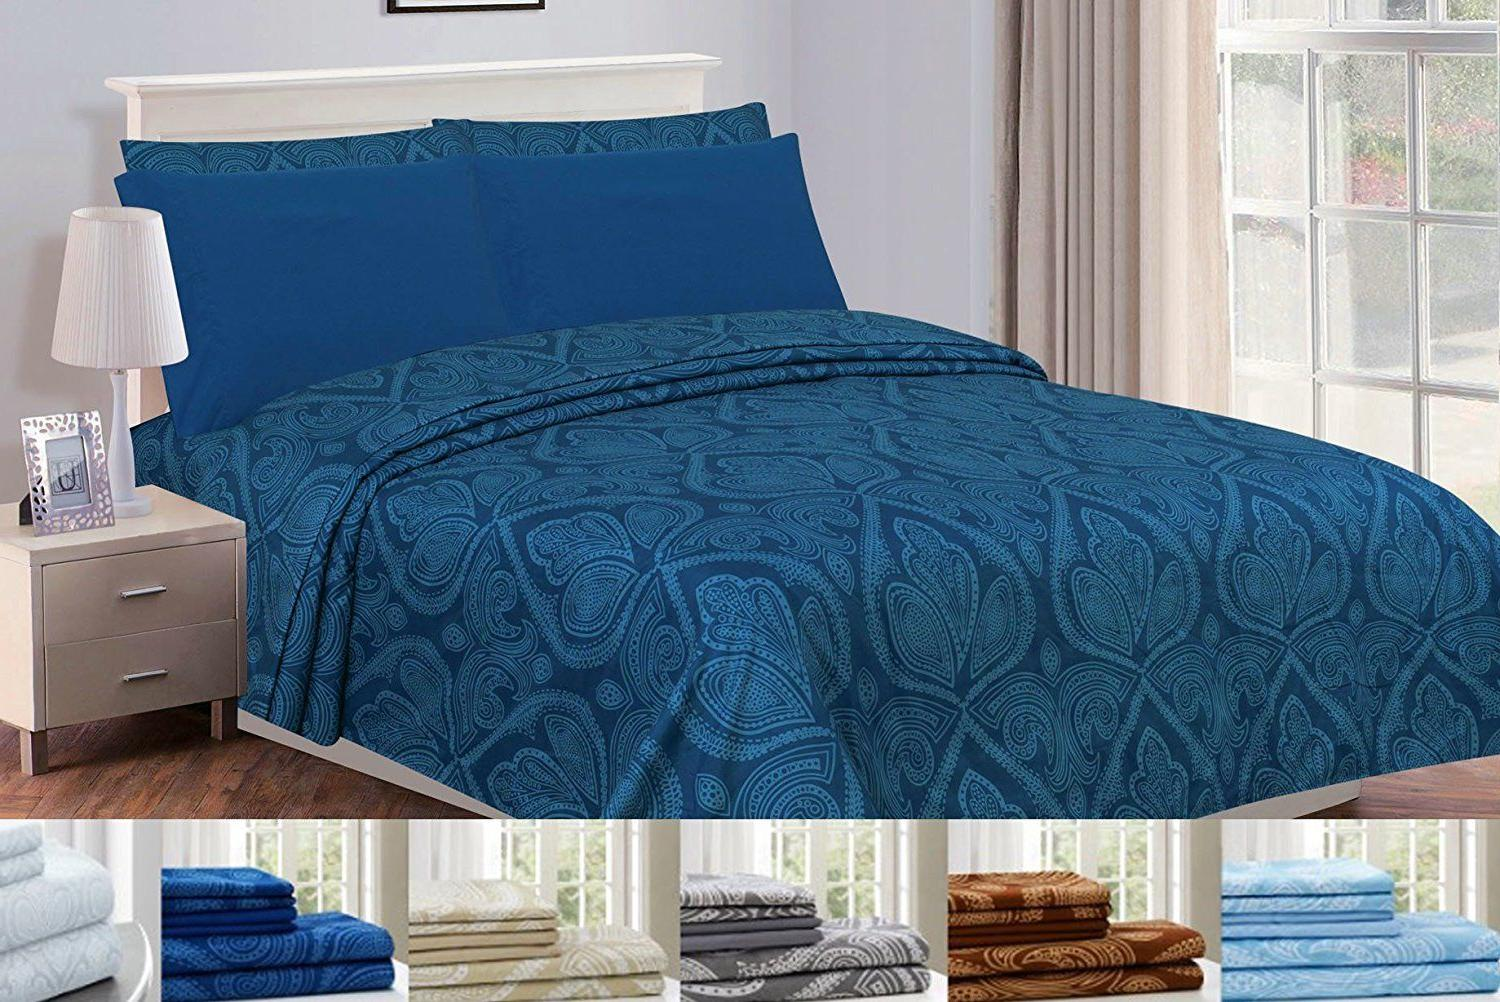 6 Piece: Series Egyptian Paisley Bed Sheet Multi Colors